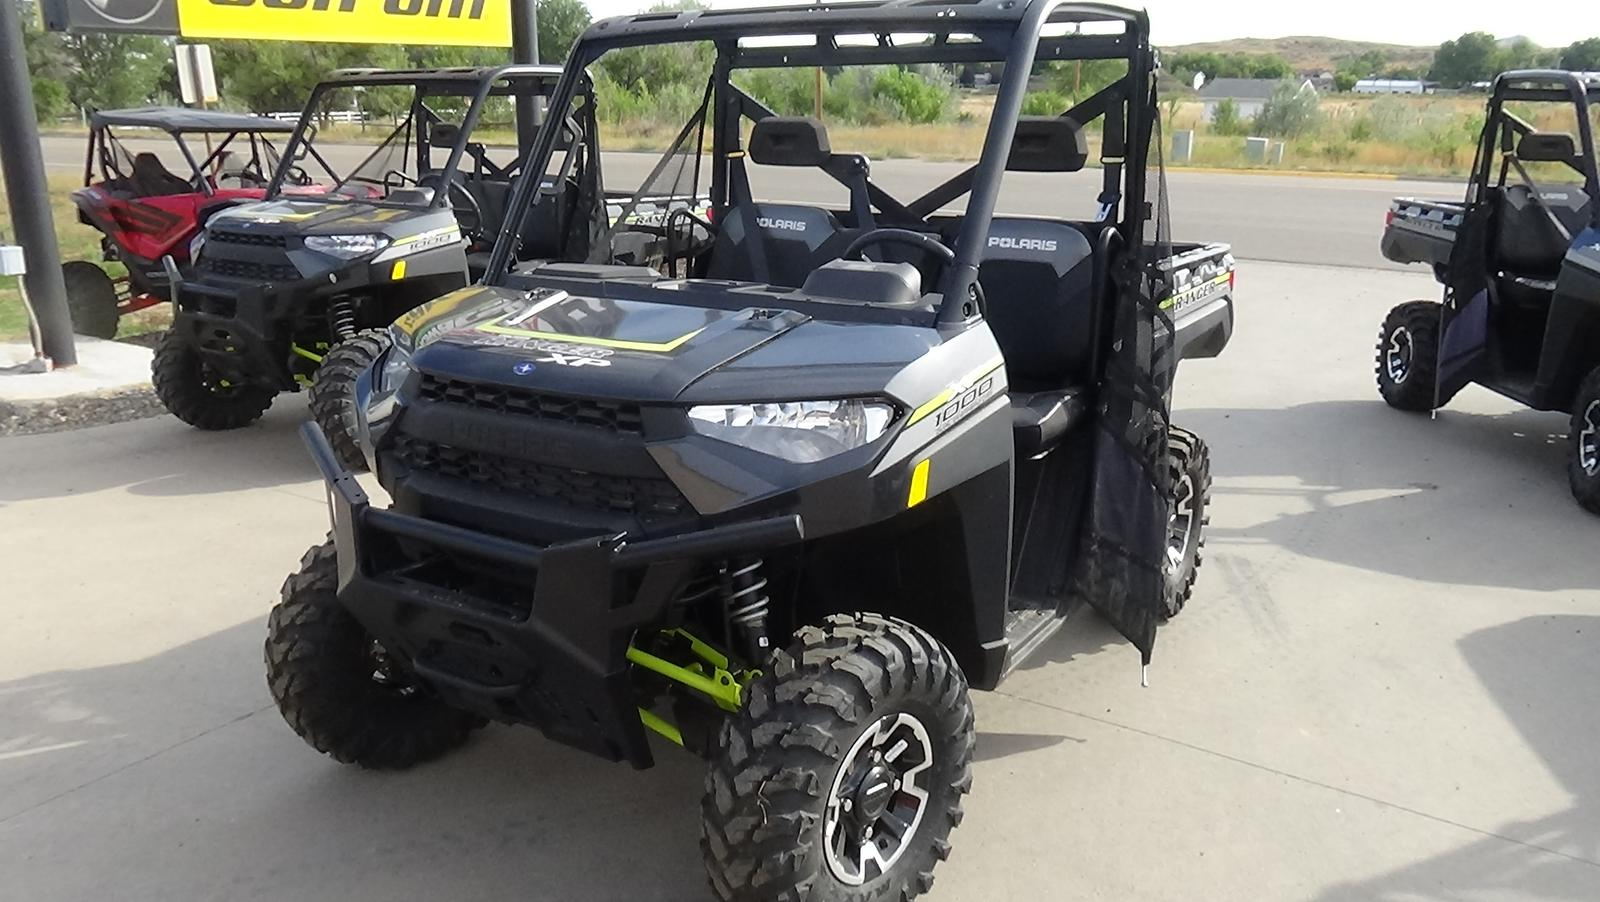 2019 polaris industries ranger xp� 1000 eps premium - magnetic gray